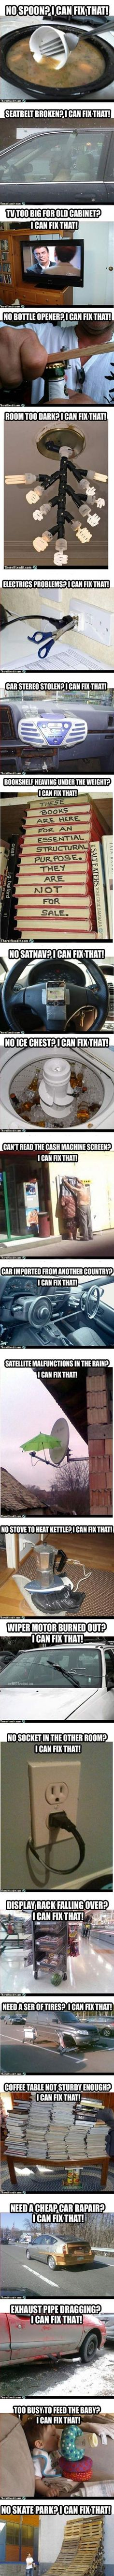 Ingenious..or just plain stupid? you be the judge :p